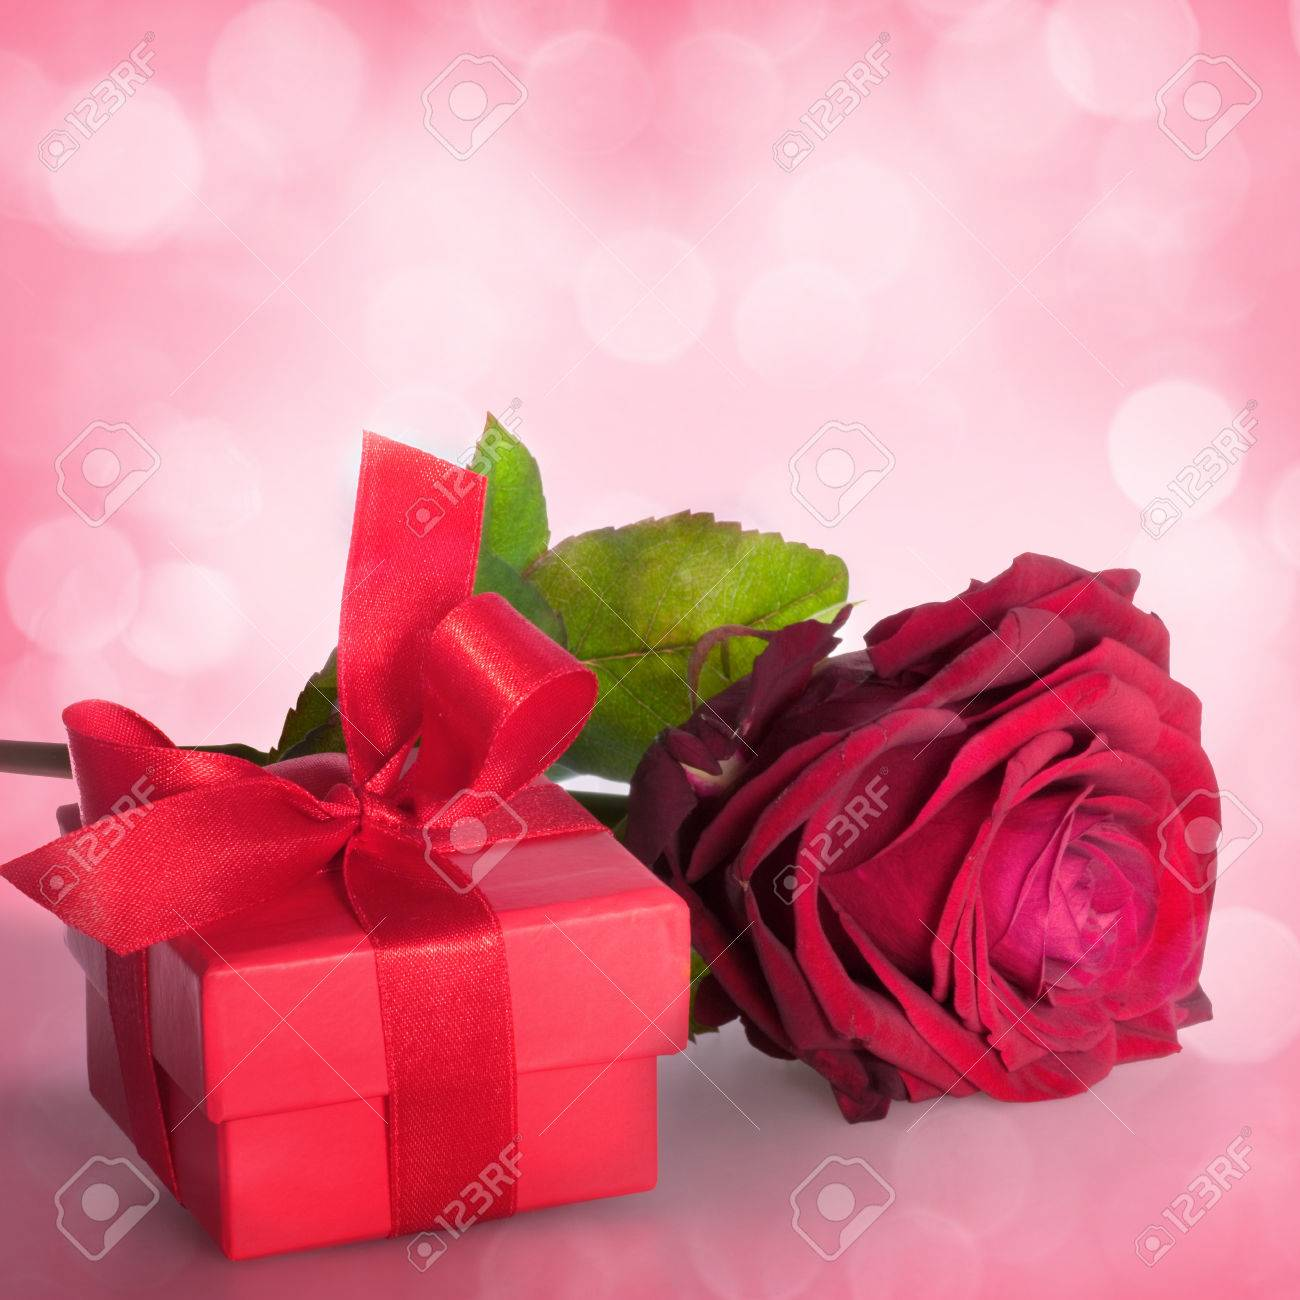 Bouquet of roses and gift box on romantic background - 43347601